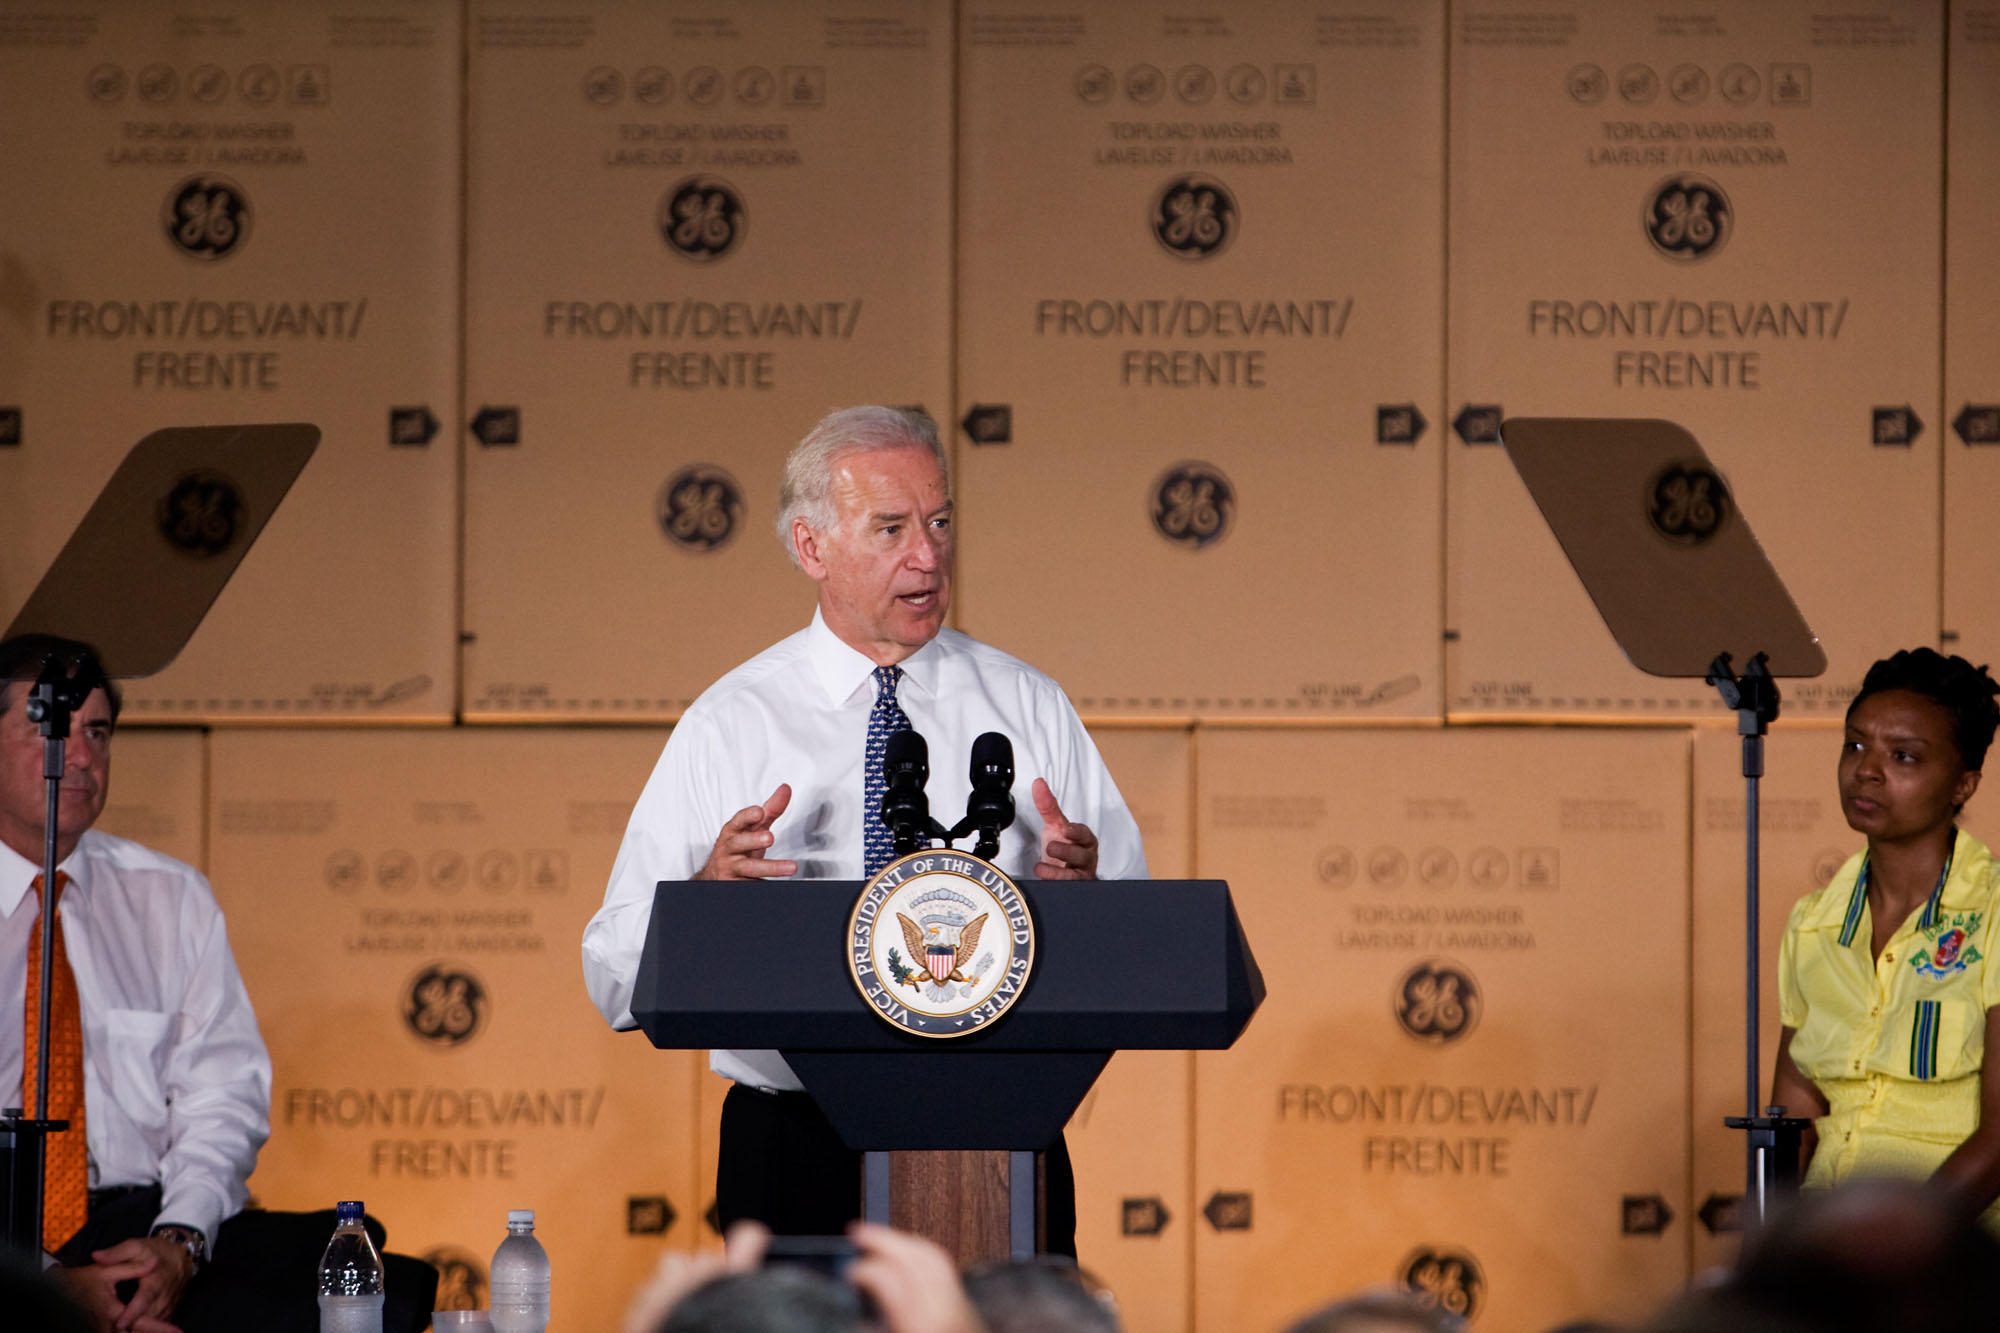 Vice President Biden Speaks at GE Appliances & Lighting in Louisville, Kentucky